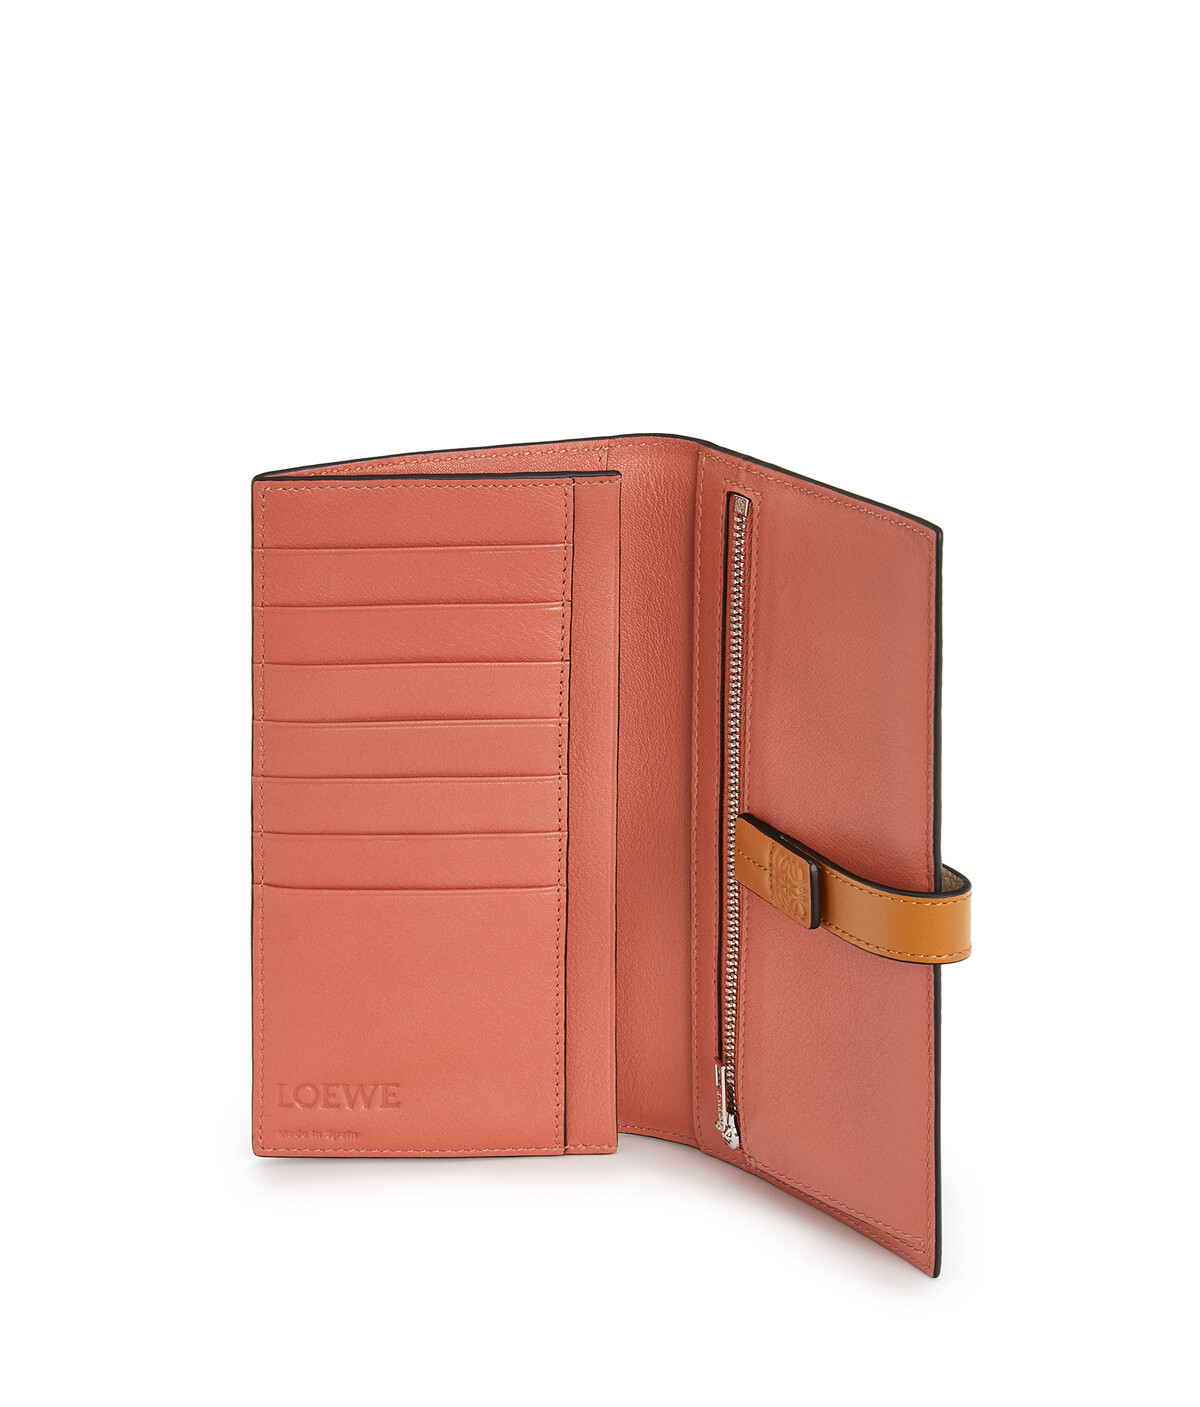 LOEWE Large Vertical Wallet Light Oat/Honey front